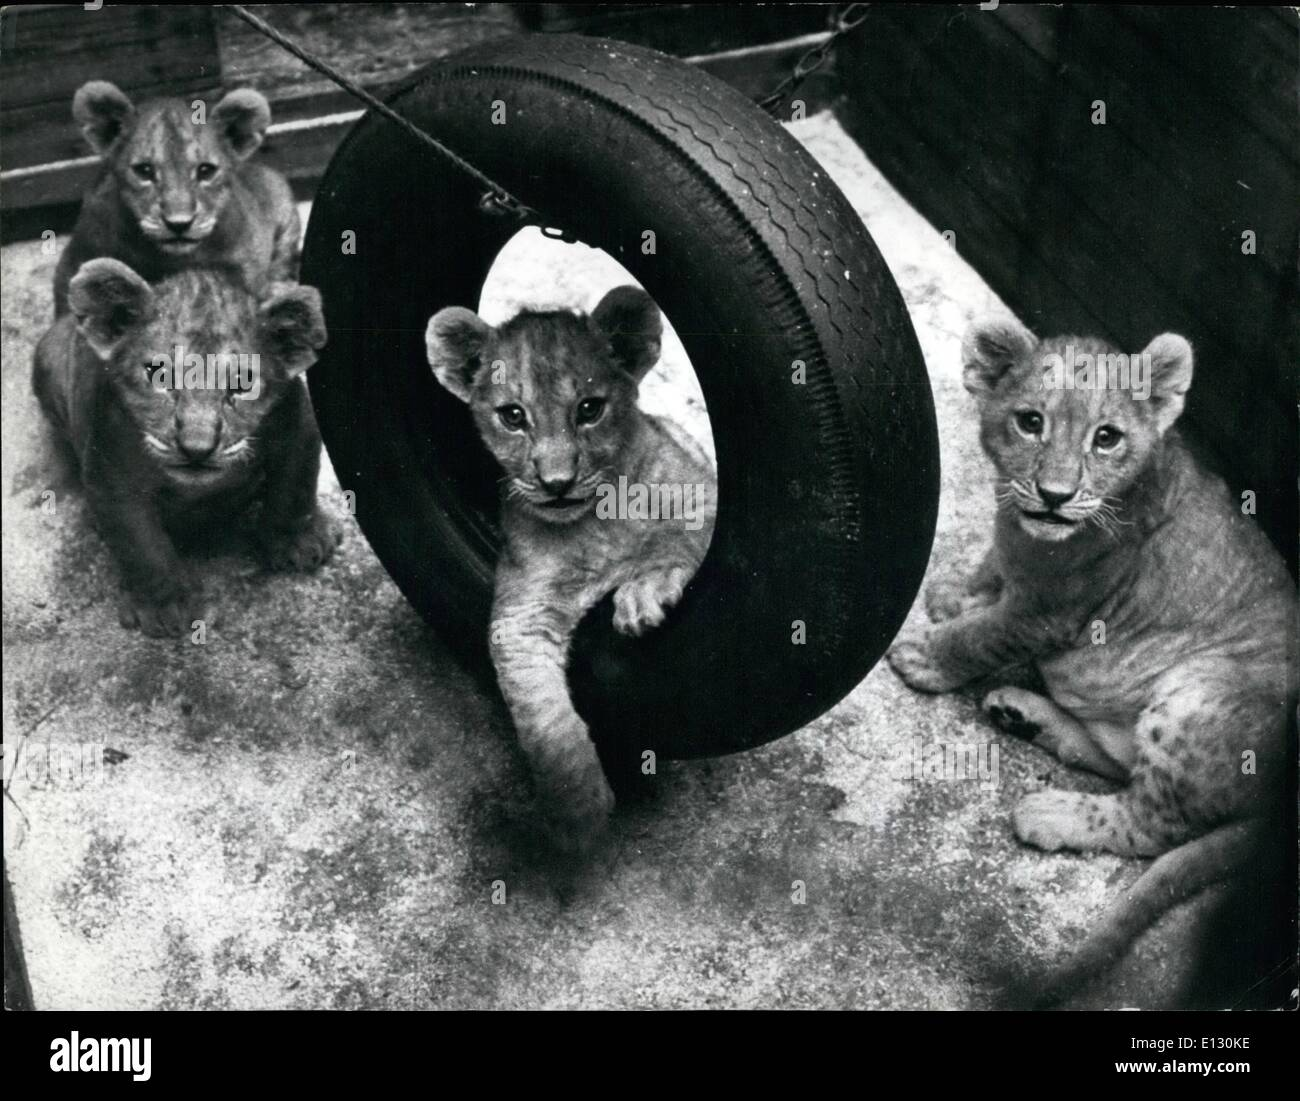 Feb. 26, 2012 - Play-time for the cubs - and an old tyre gives them much amusement. - Stock Image